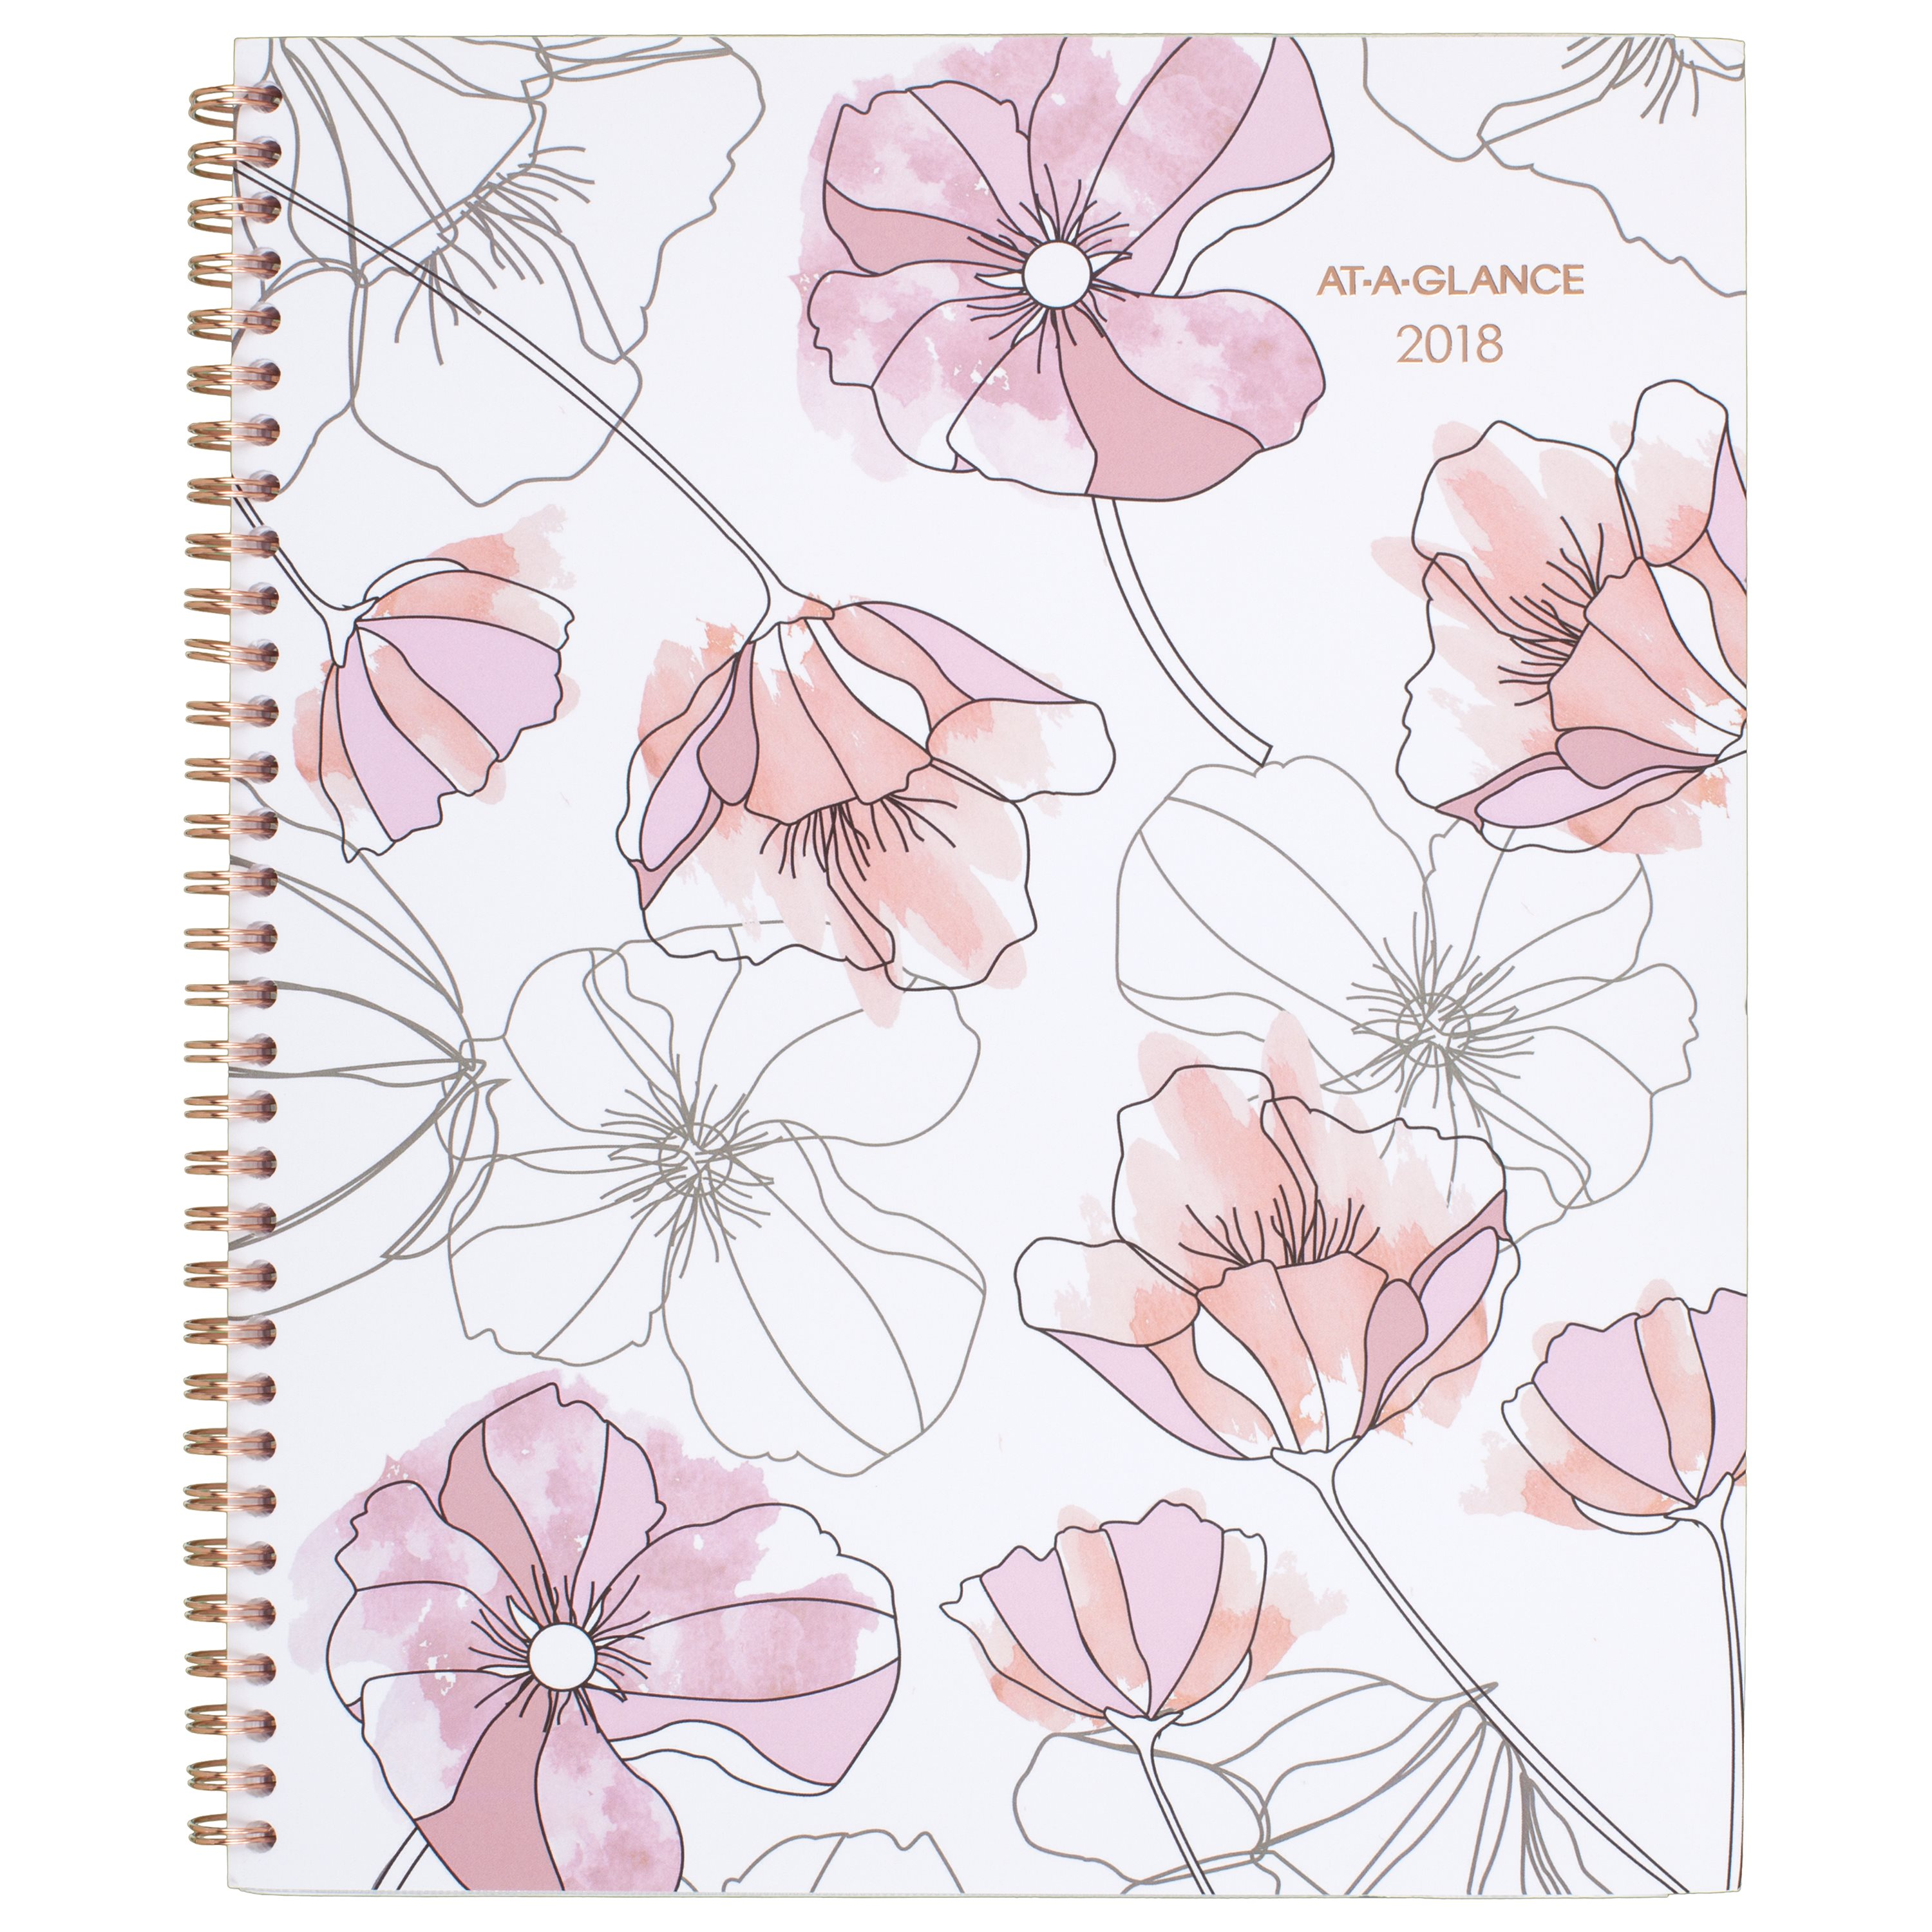 """2018 AT-A-GLANCE Blush Monthly Planner, 12 Months, January Start, 8 1 2"""" x 11\ by ACCO BRANDS"""